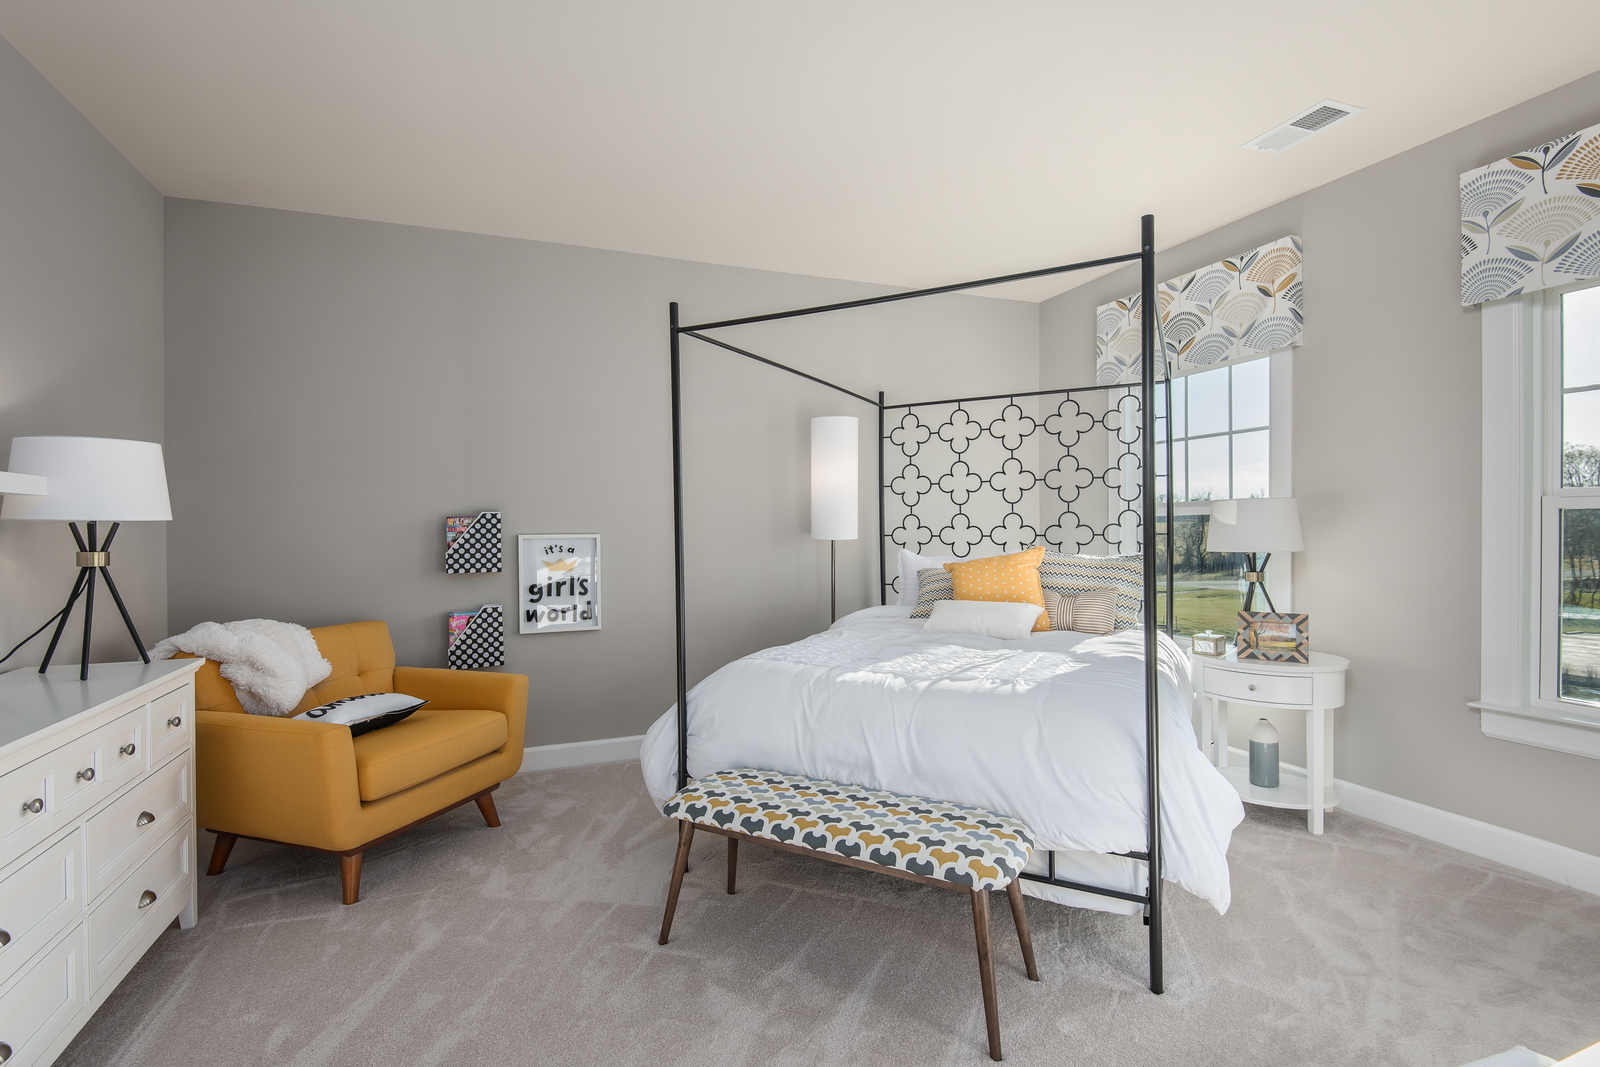 Spacious secondary bedrooms include walk-in closets and private access to baths.